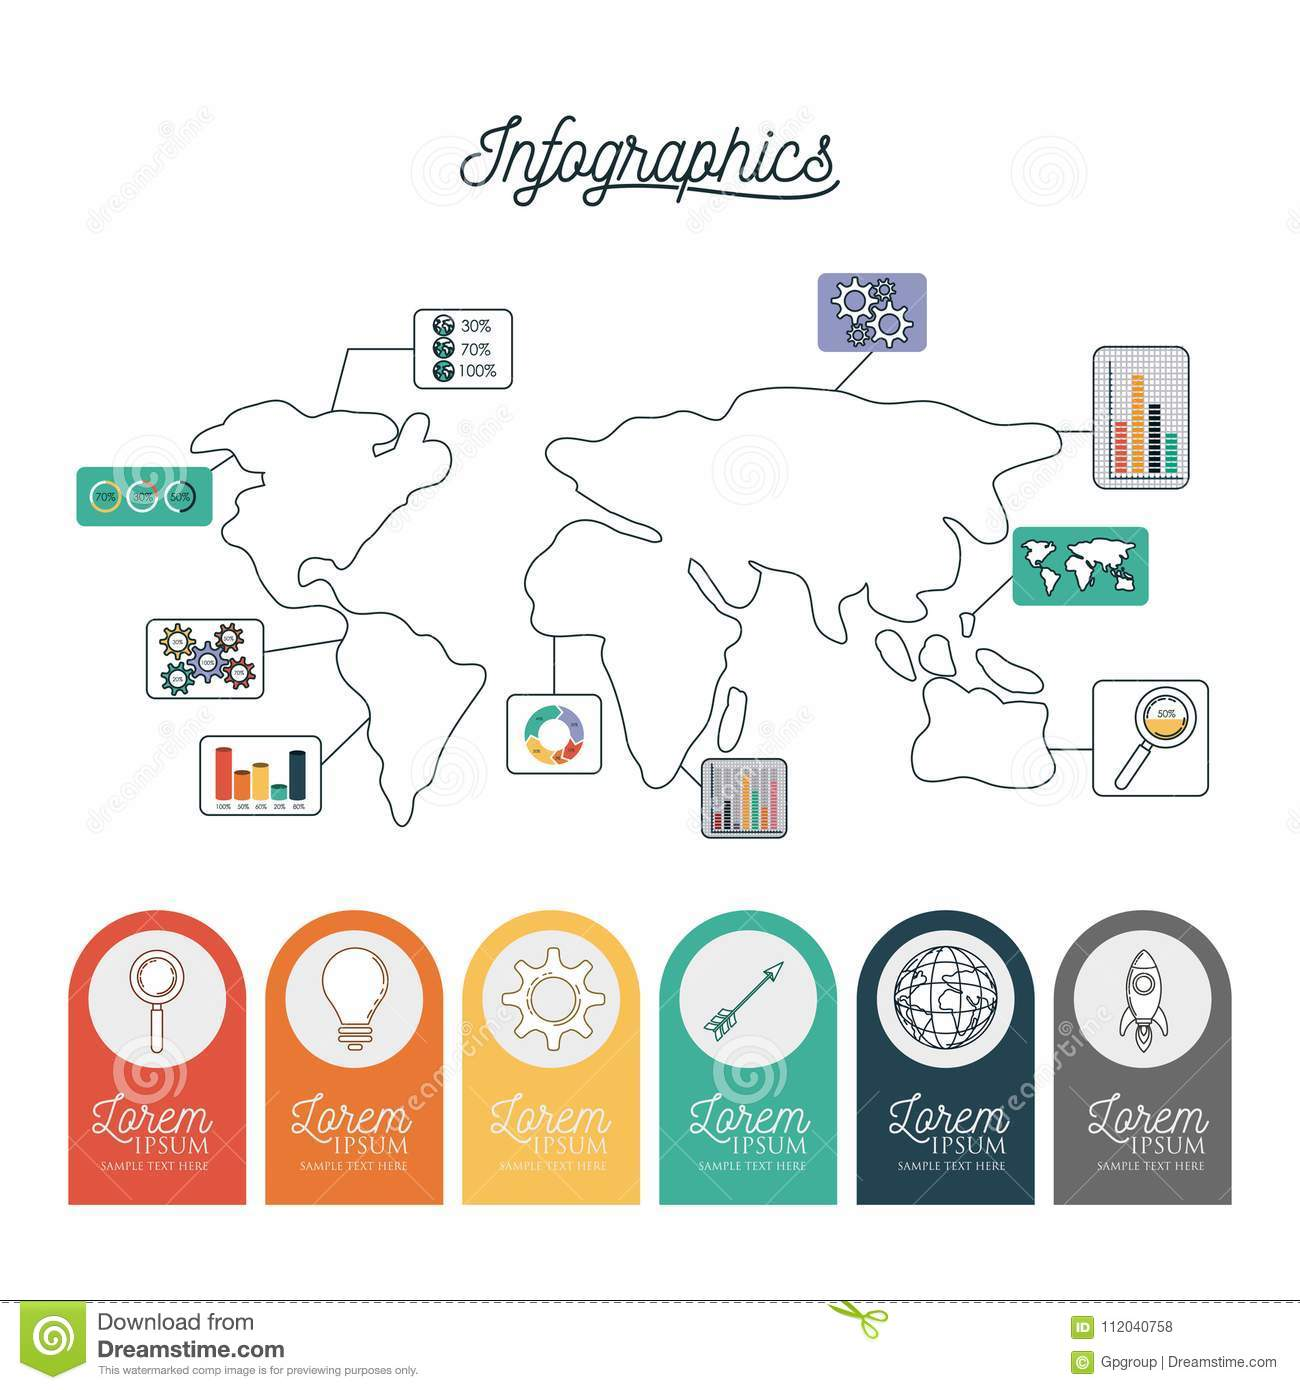 Infographic world map with labels with icons on circles on bottom download comp gumiabroncs Choice Image